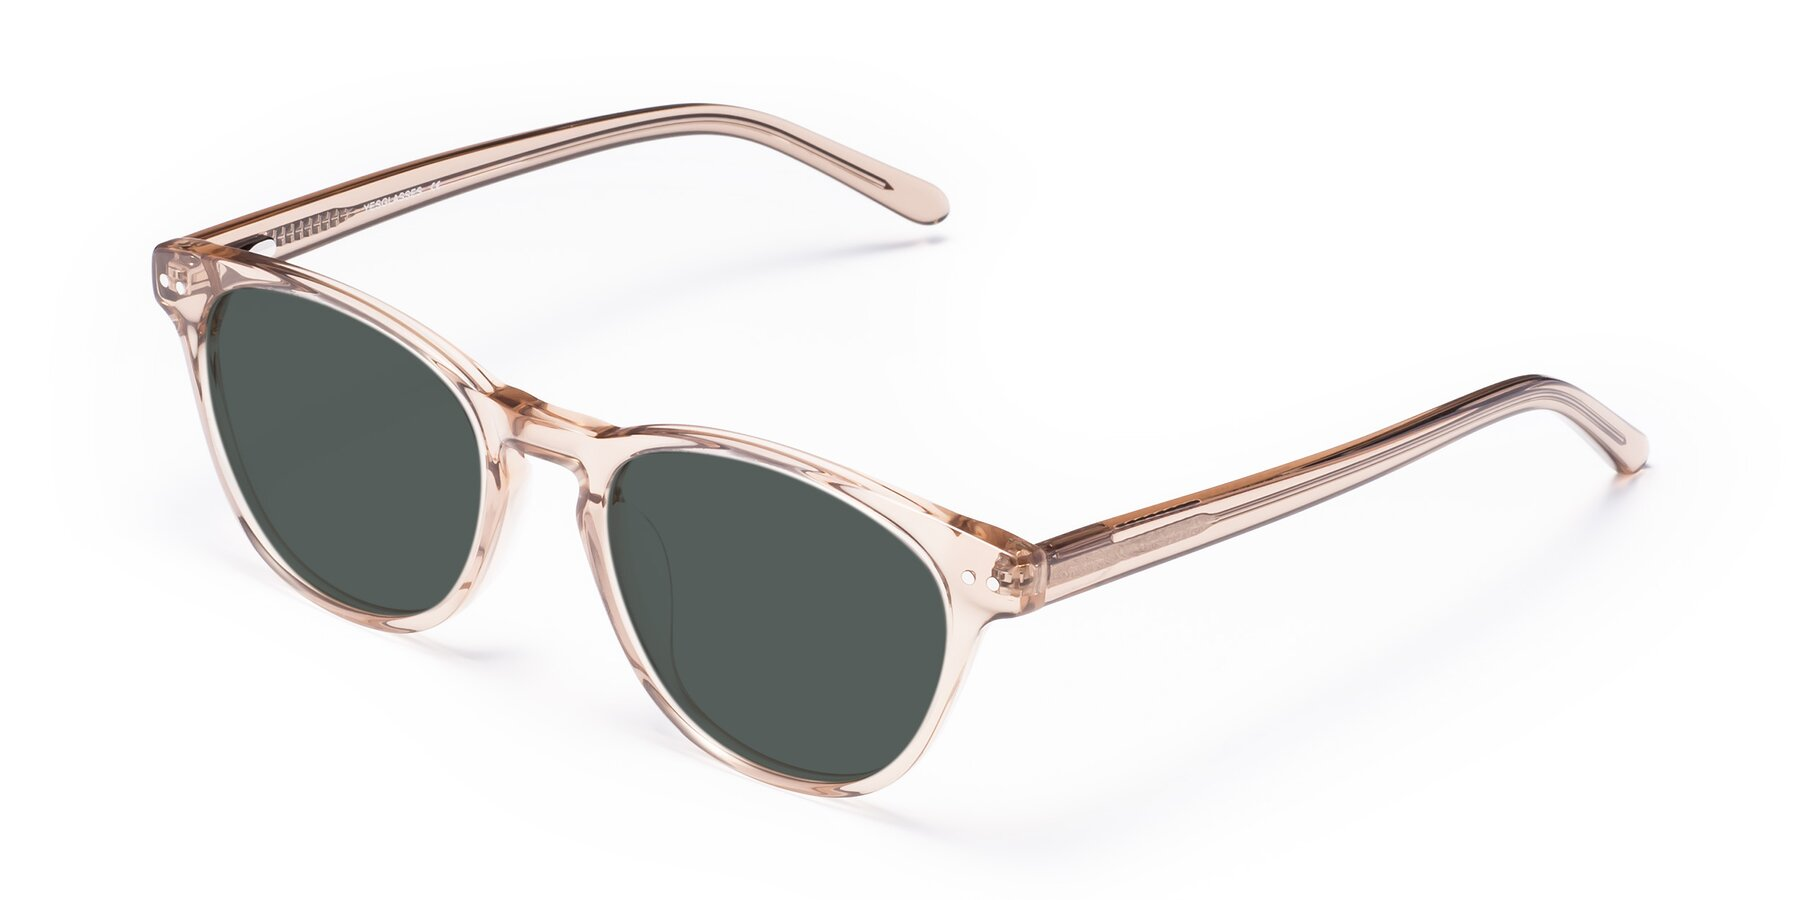 Angle of Blaze in light Brown with Gray Polarized Lenses